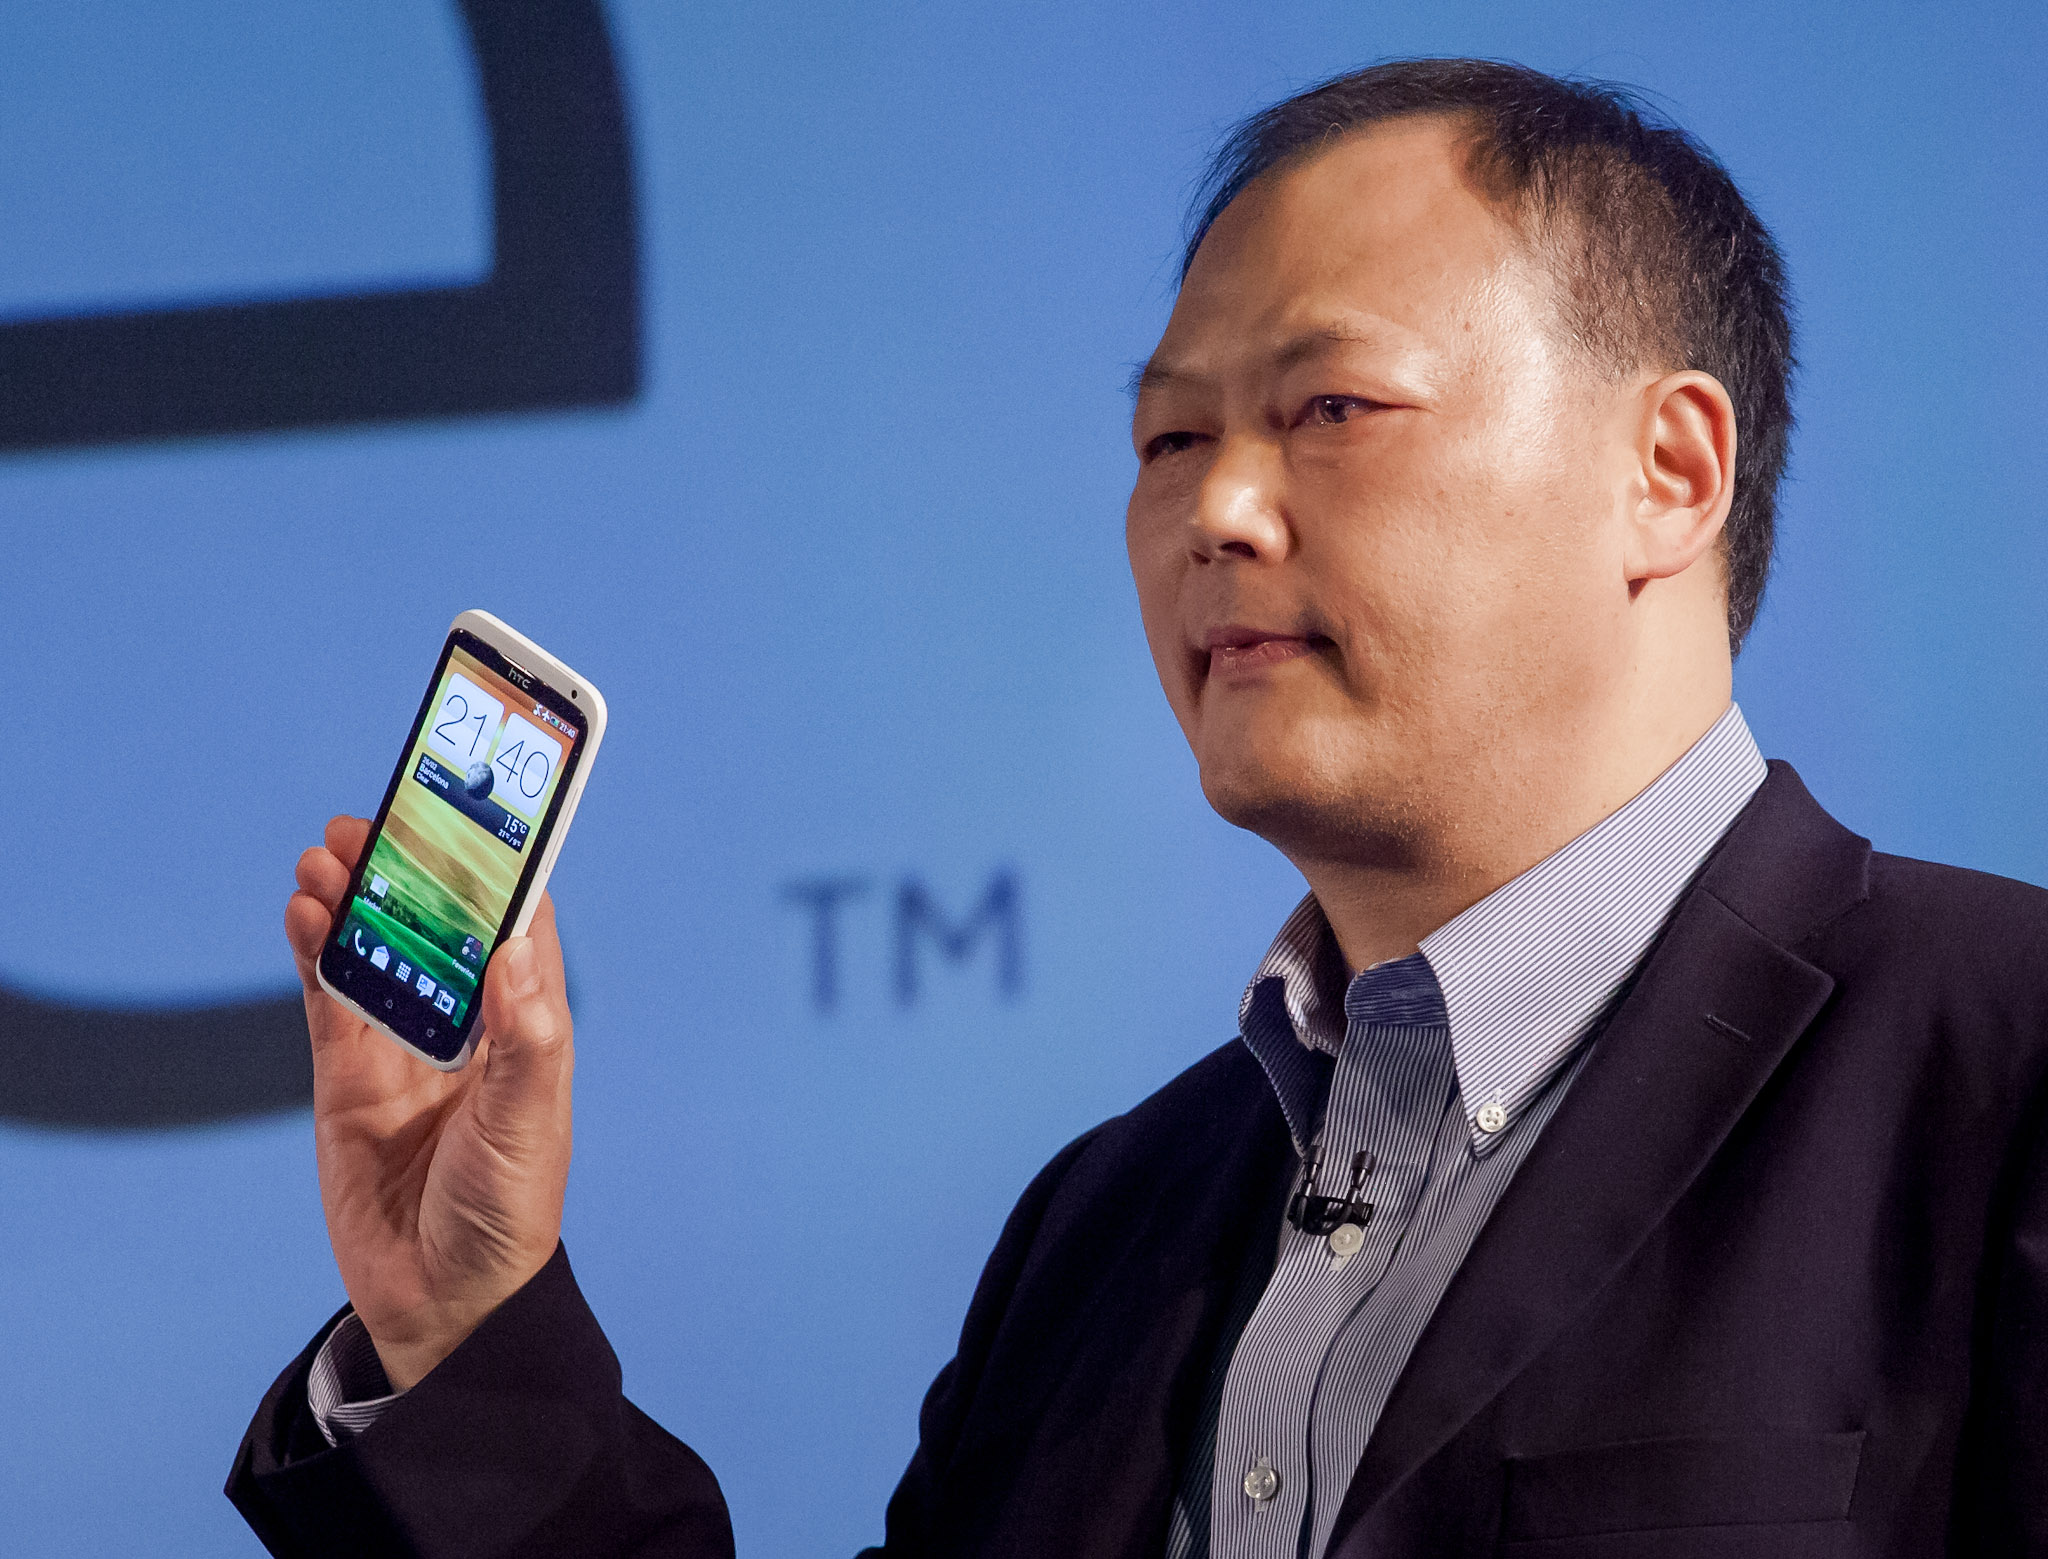 HTC Chief Executive Peter Chou holds the new HTC One X Android phone at Mobile World Congress in Barcelona, Spain.